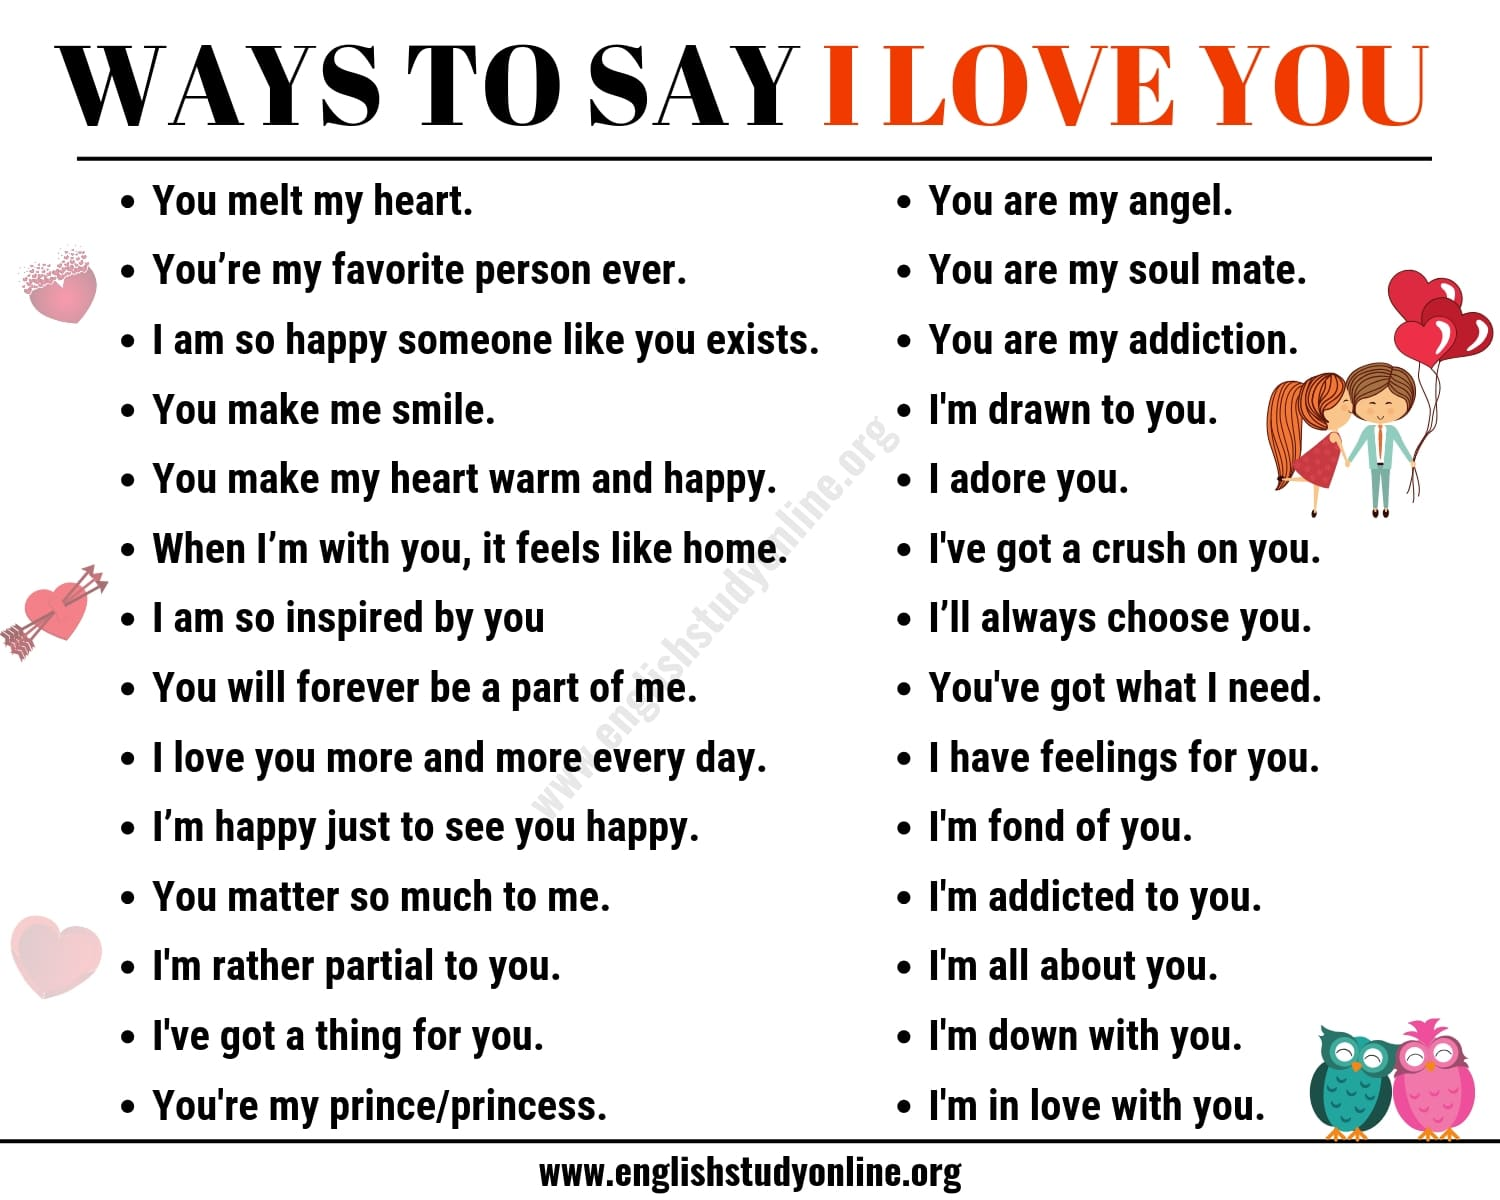 What to say instead of i love you